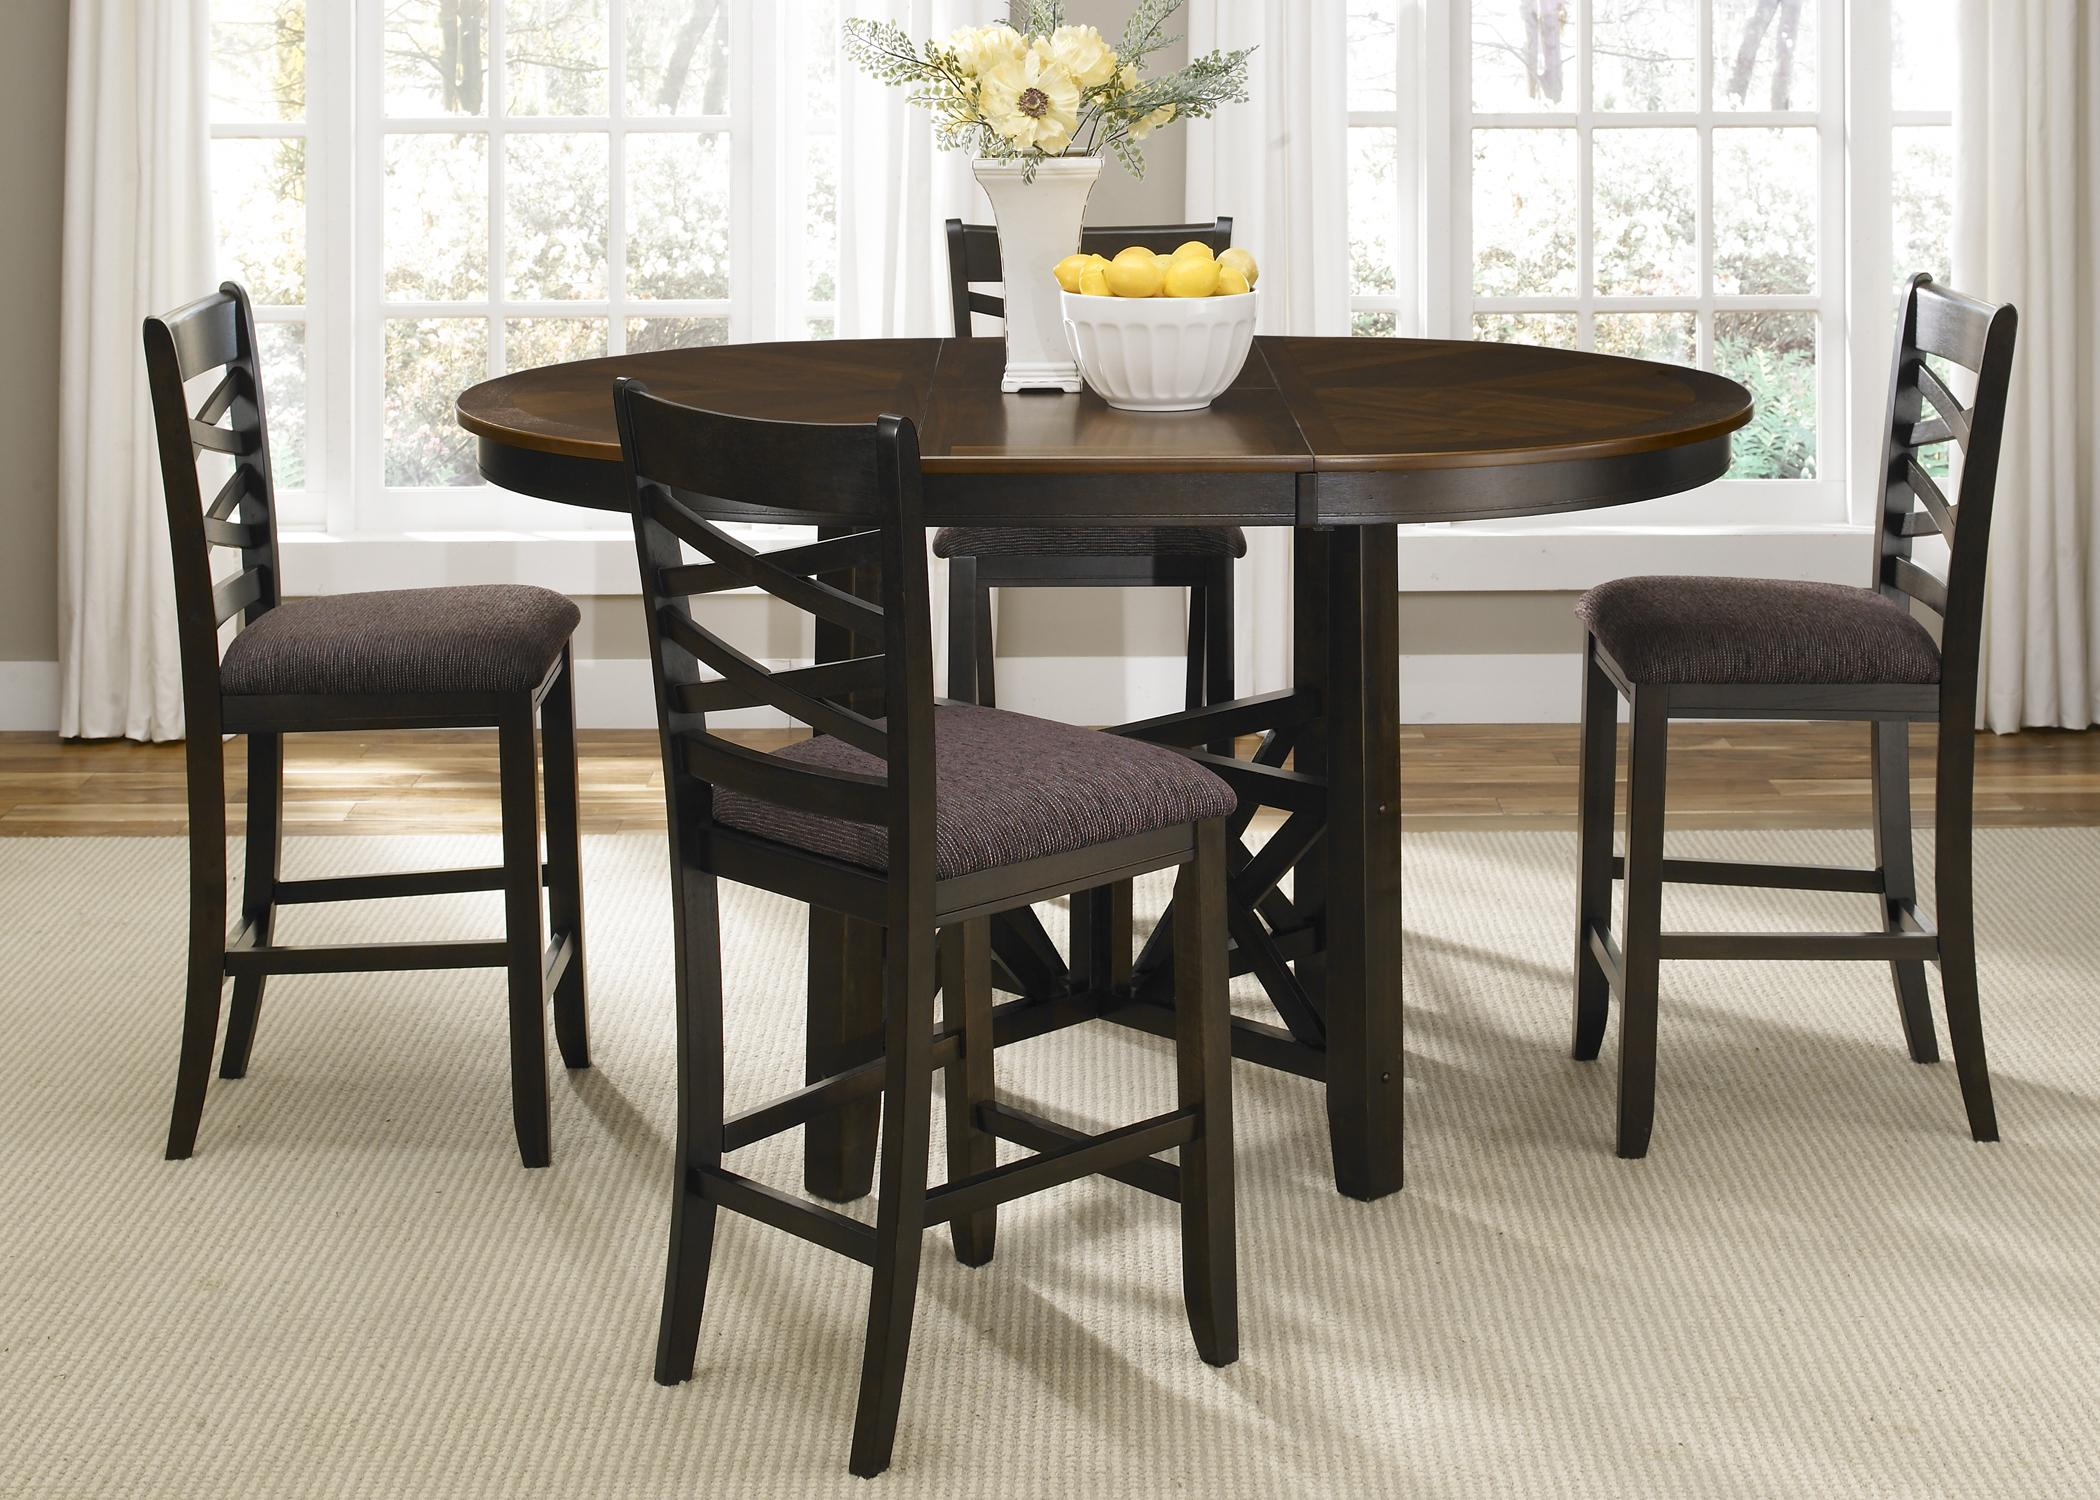 Liberty Furniture Bistro II Round To Oval Single Pedestal Dining Table With  18 Inch Butterfly Leaf   Wayside Furniture   Dining Room Table